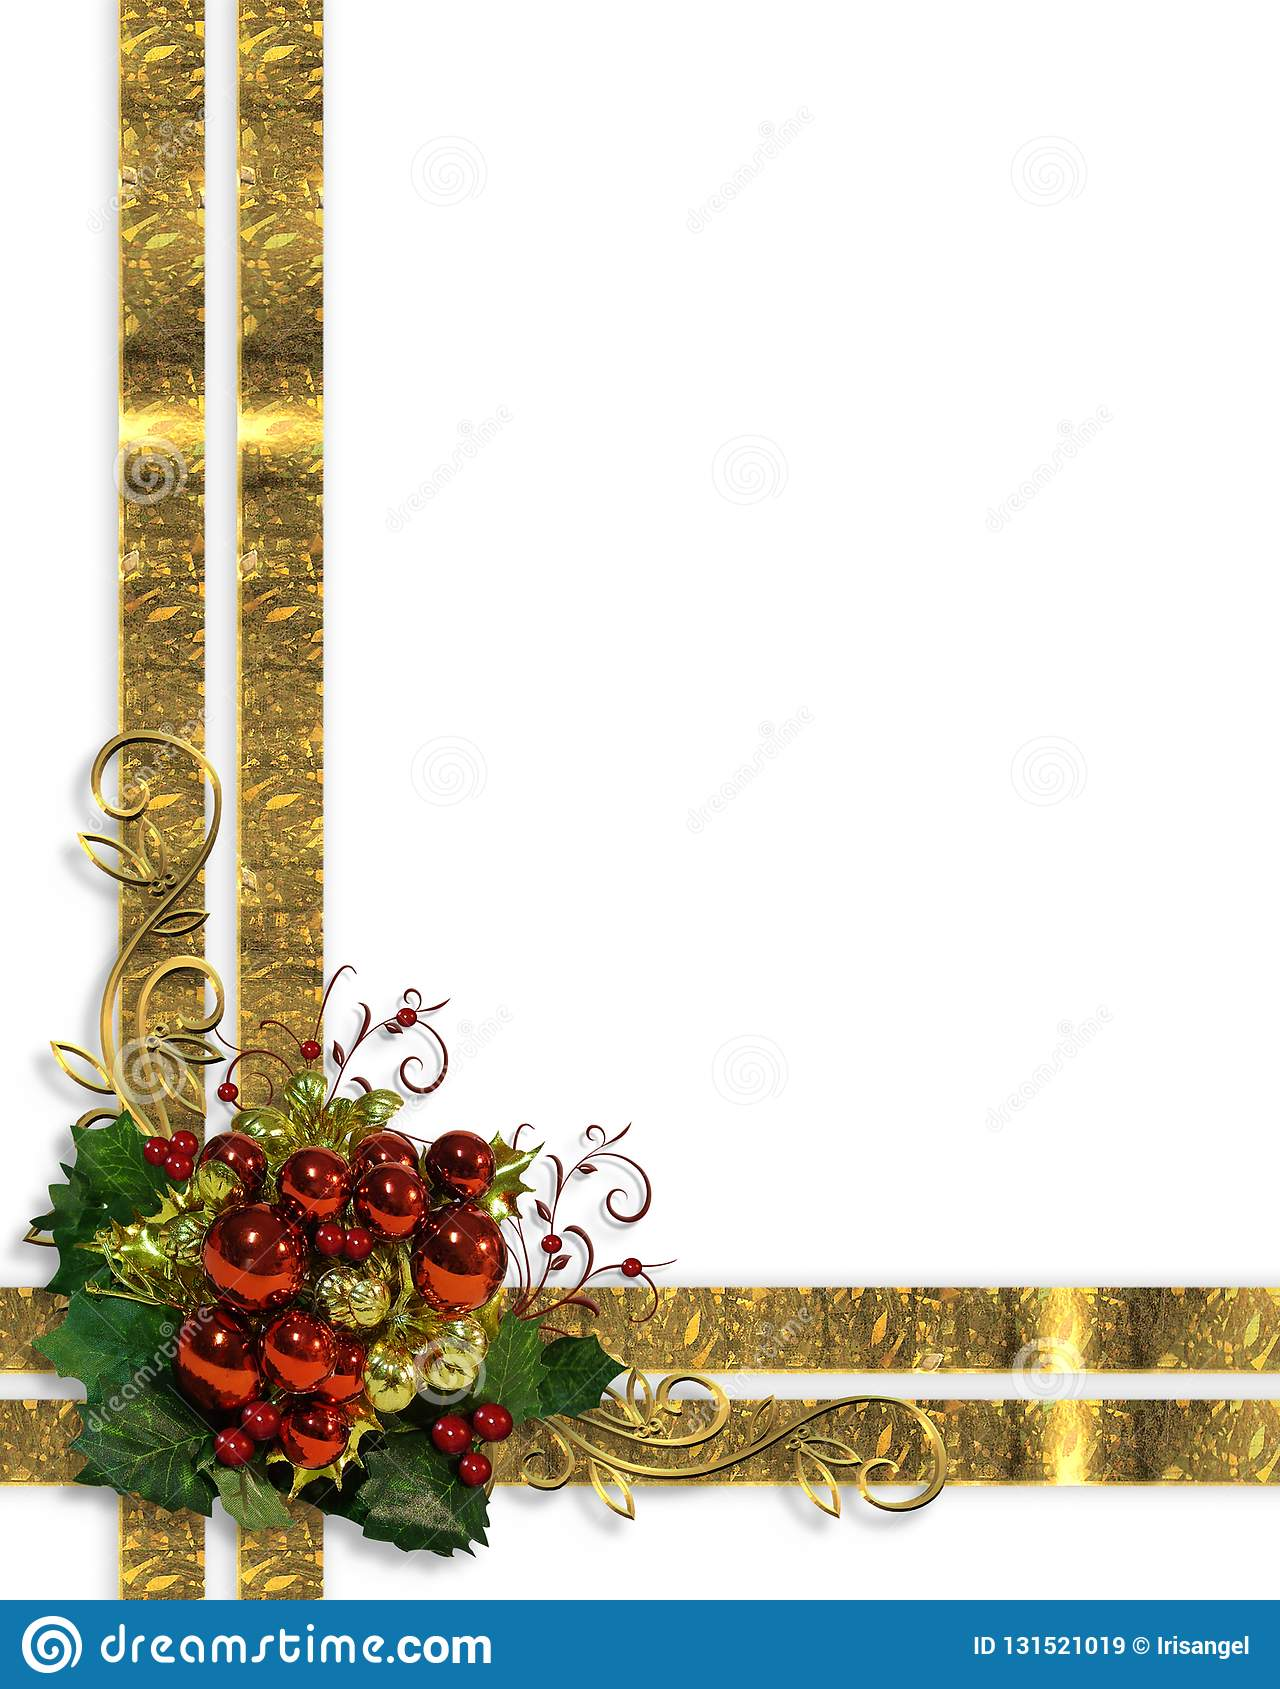 christmas border fancy ribbons and ornaments stock image